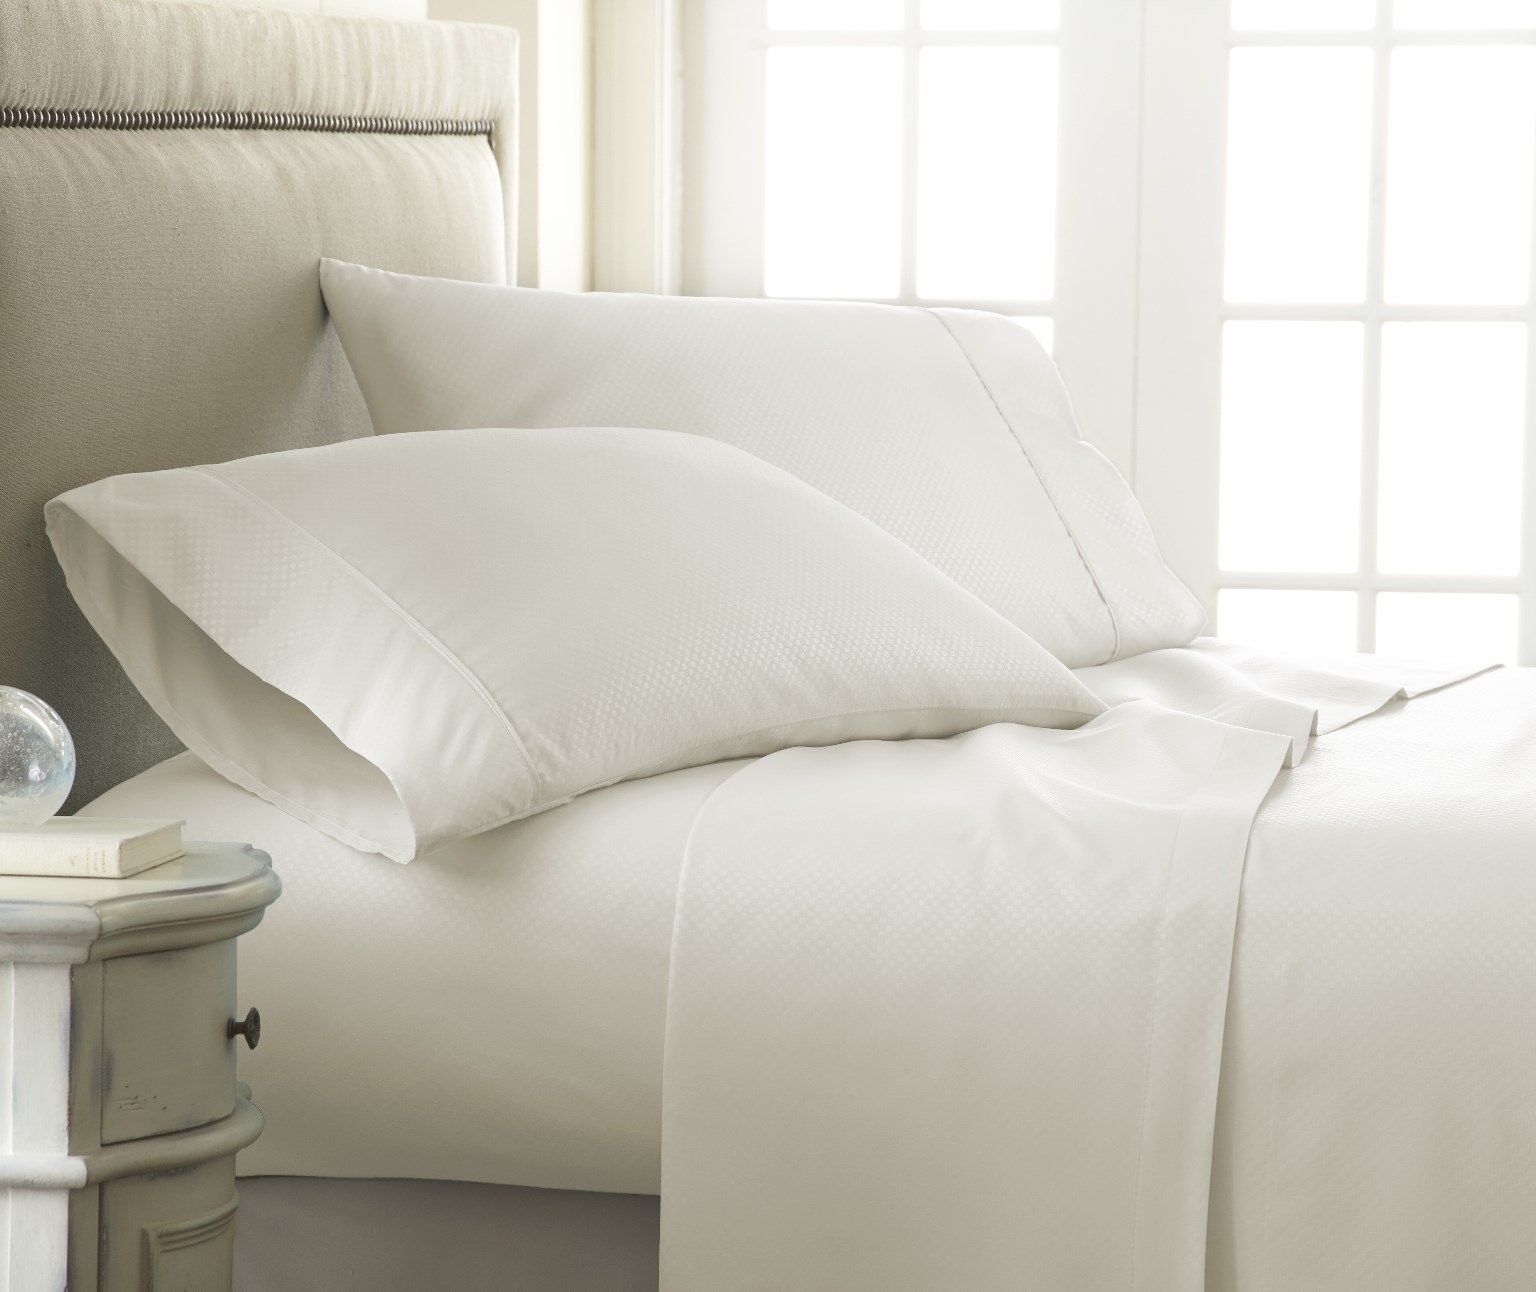 Soft Essentials Premium Embossed Checker Design 4 Piece Bed Sheet Set (King - Ivory)(Pack of 12)